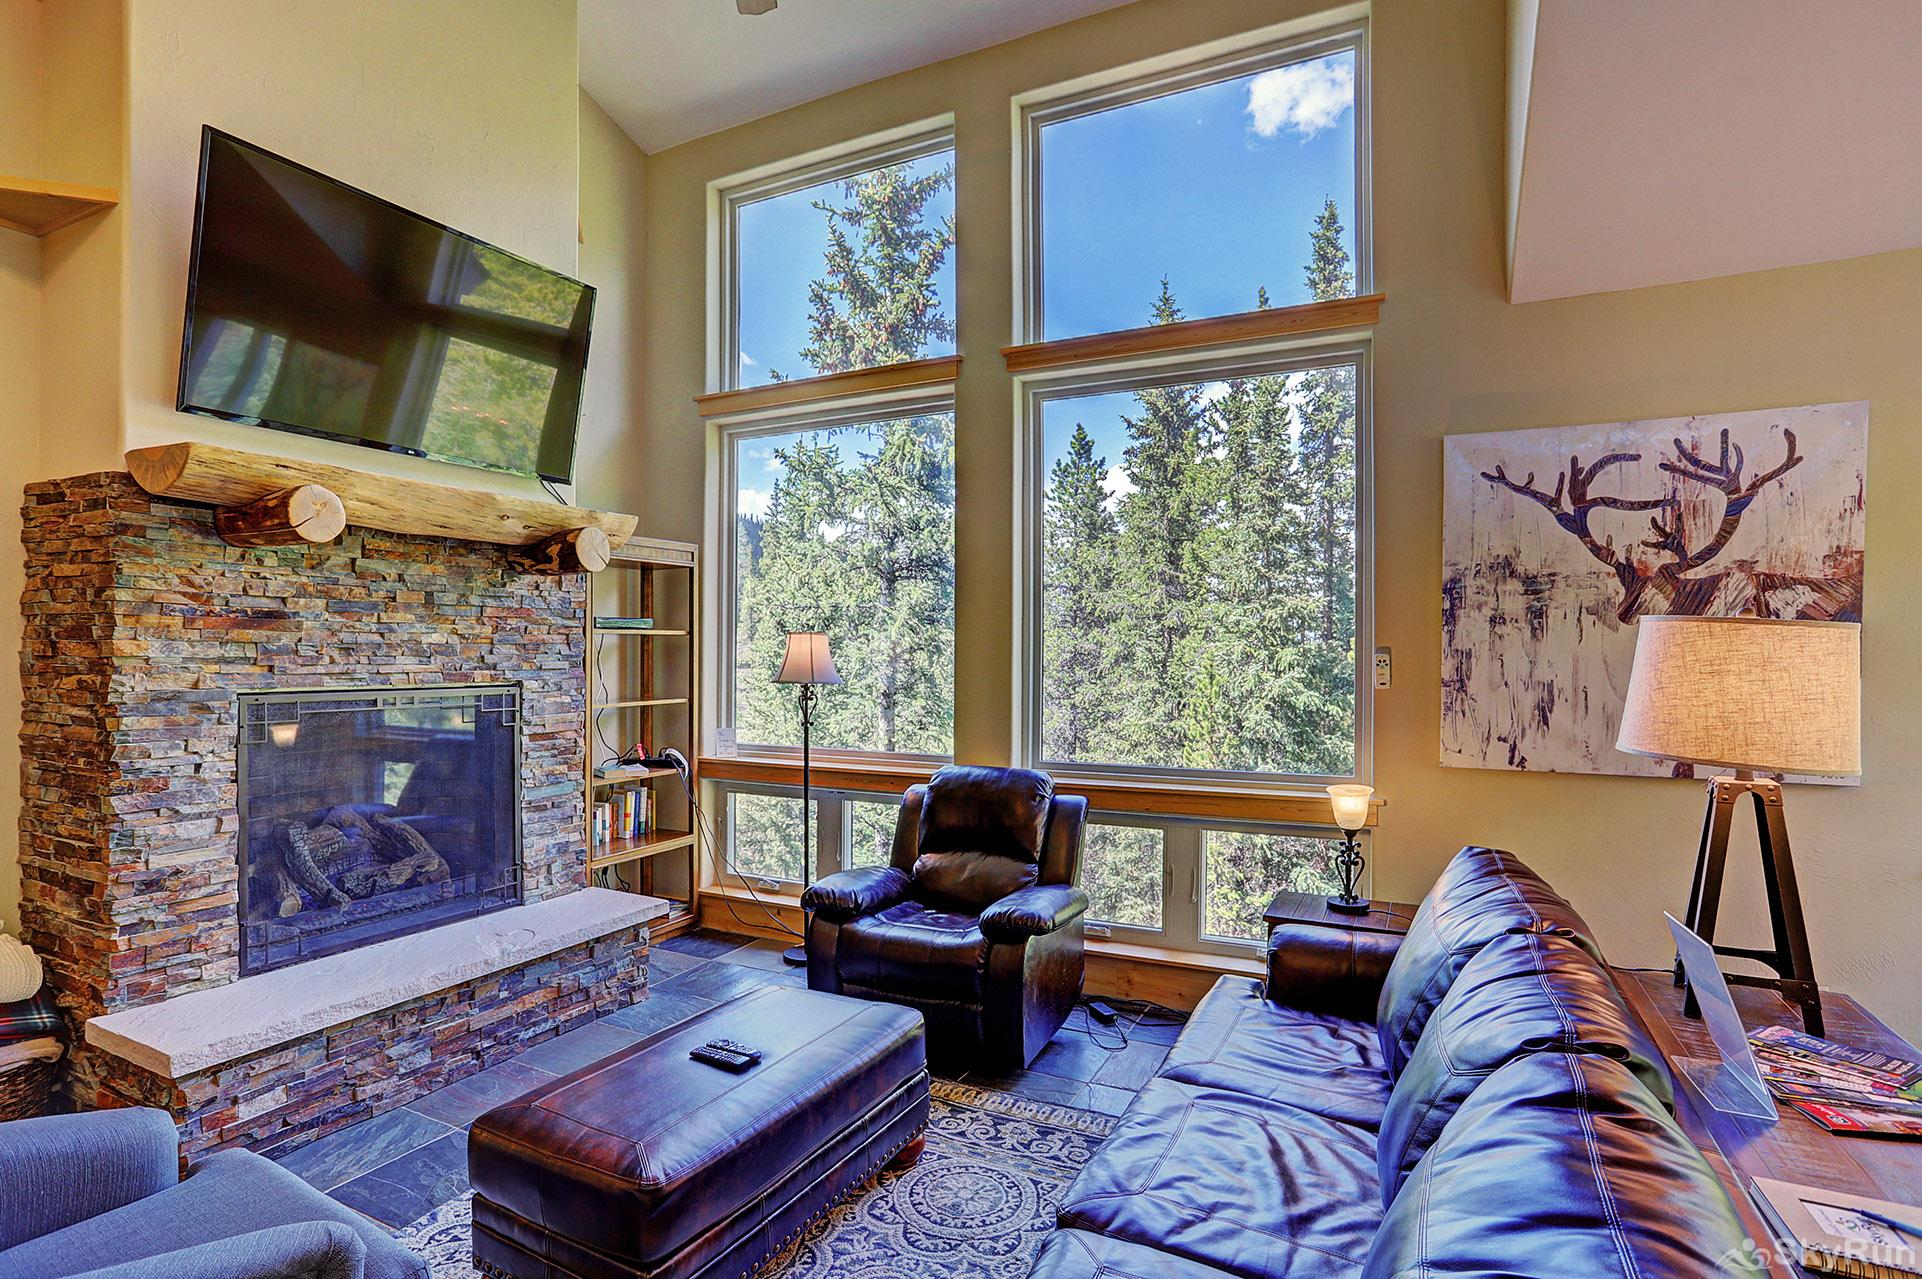 Twin Creek Lodge Large windows provide ample natural light for the living area